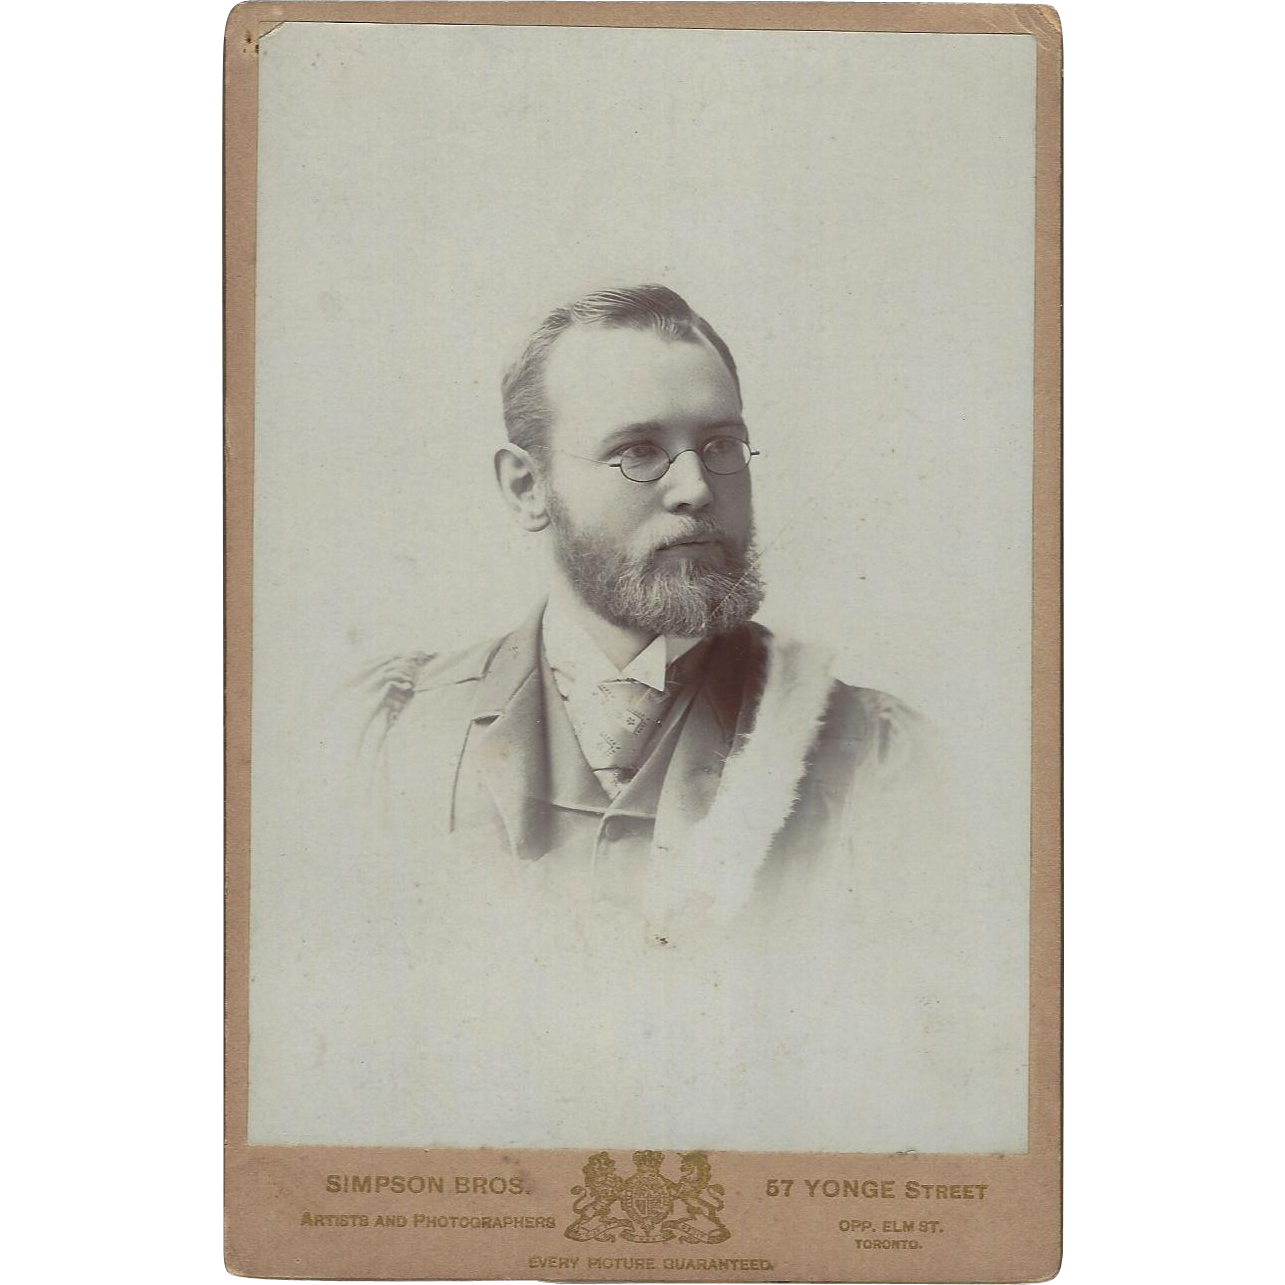 Cabinet Card, Young Man with Beard and Glasses Toronto